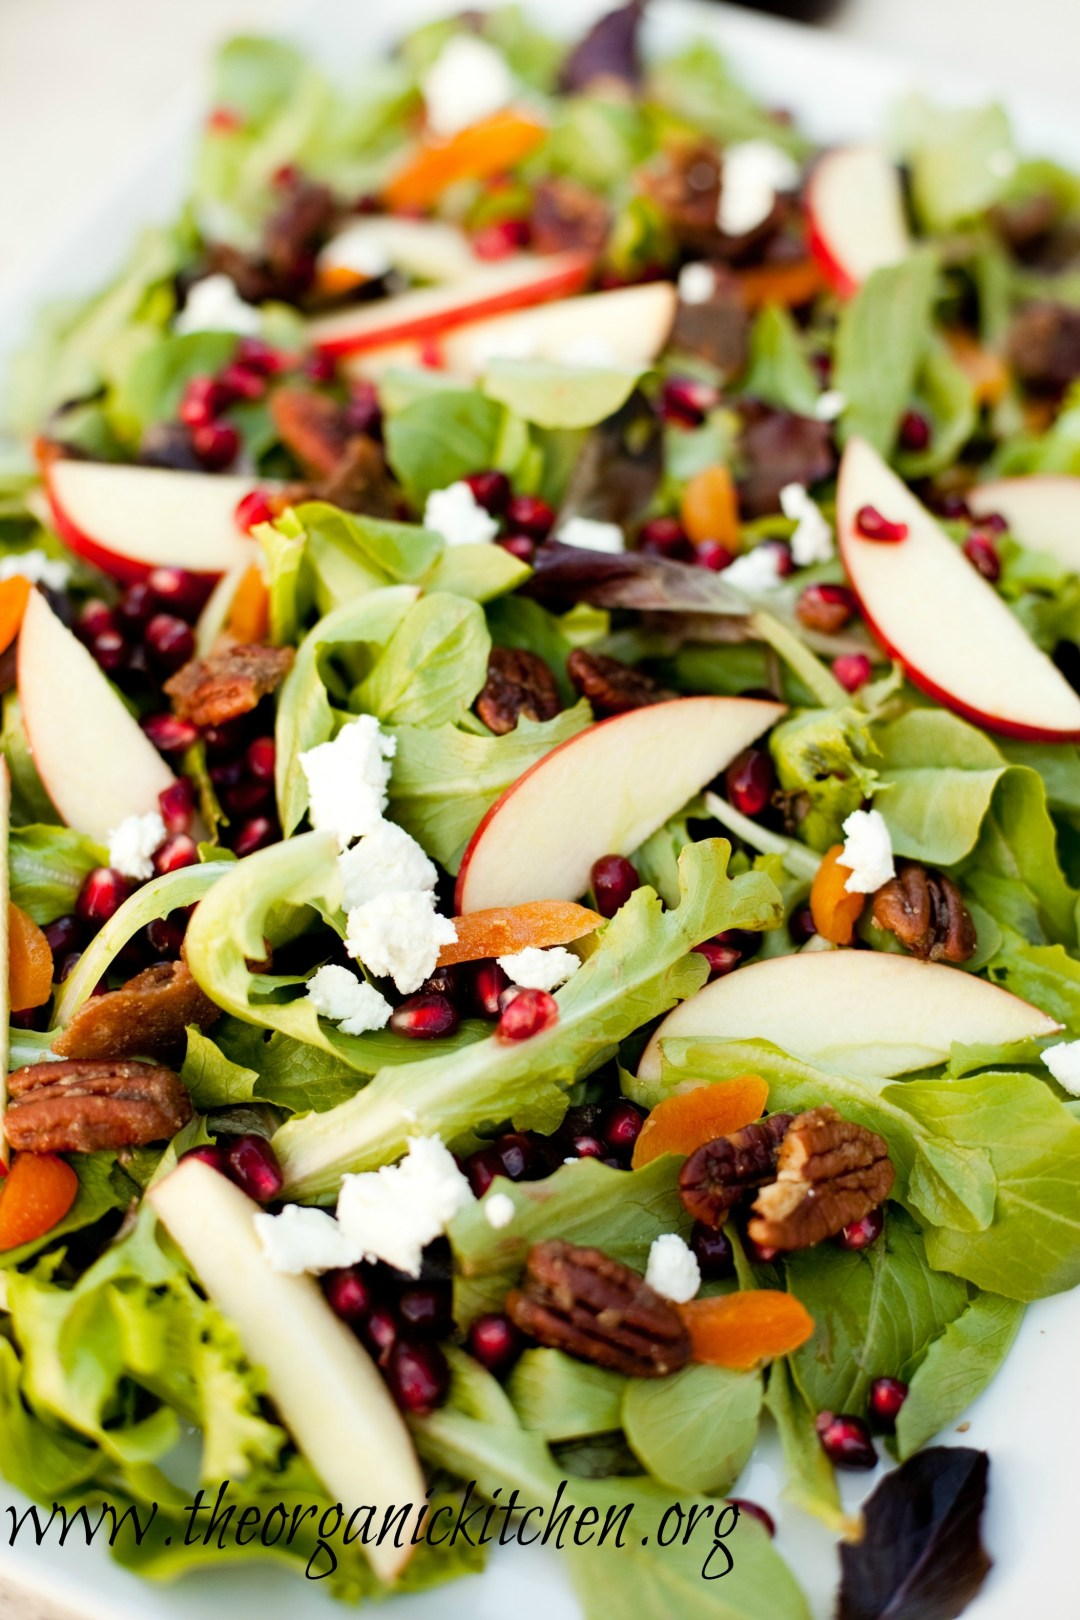 Secrets to Making an Amazing Salad